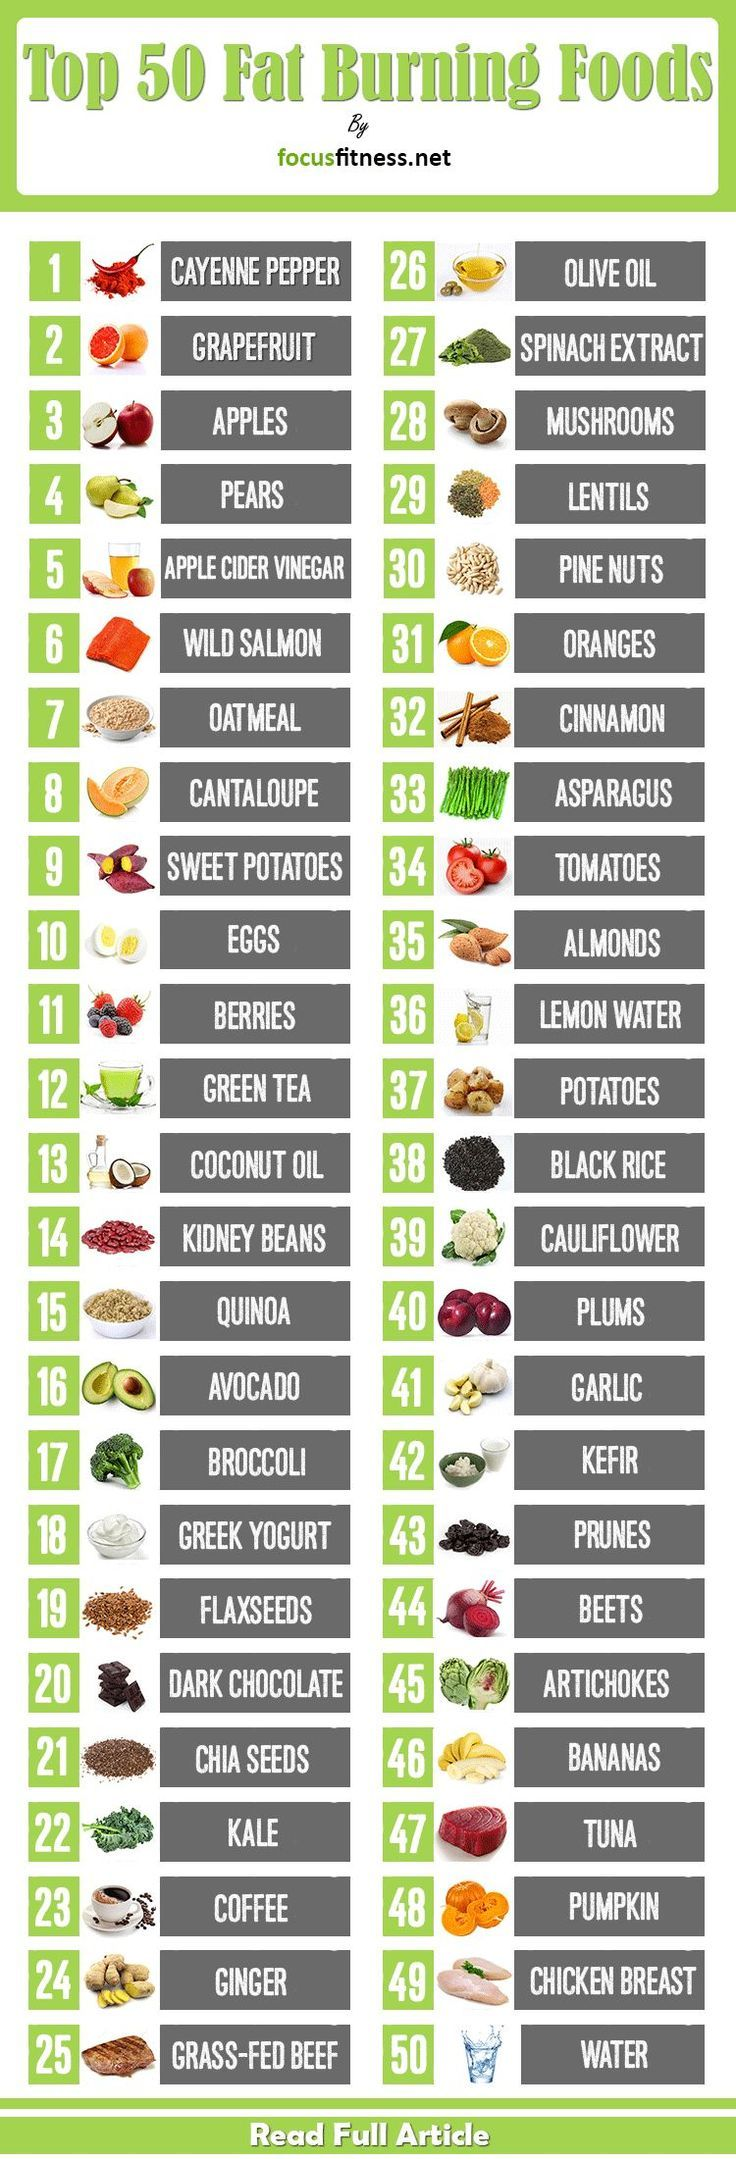 fat burning foods for weight loss www.focusfitness....   - Healthy Meals - #burning #fat #Foods #Hea...